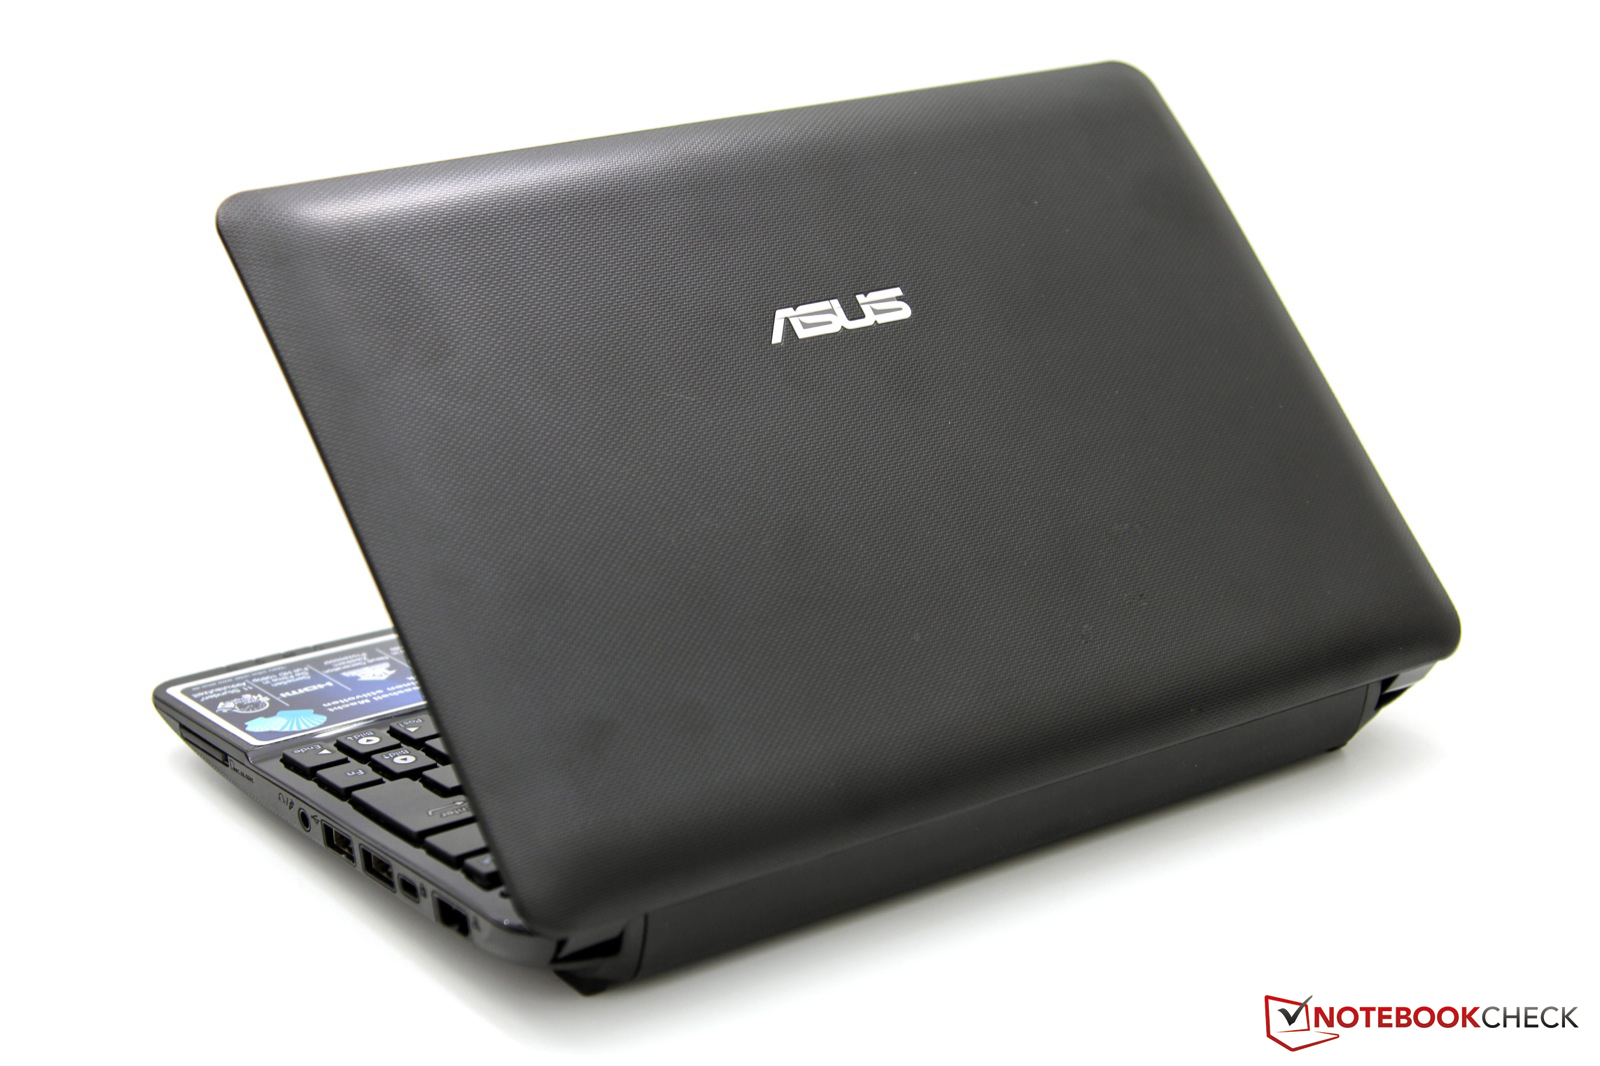 Asus Eee PC 1011CX Netbook Realtek Audio Drivers for PC